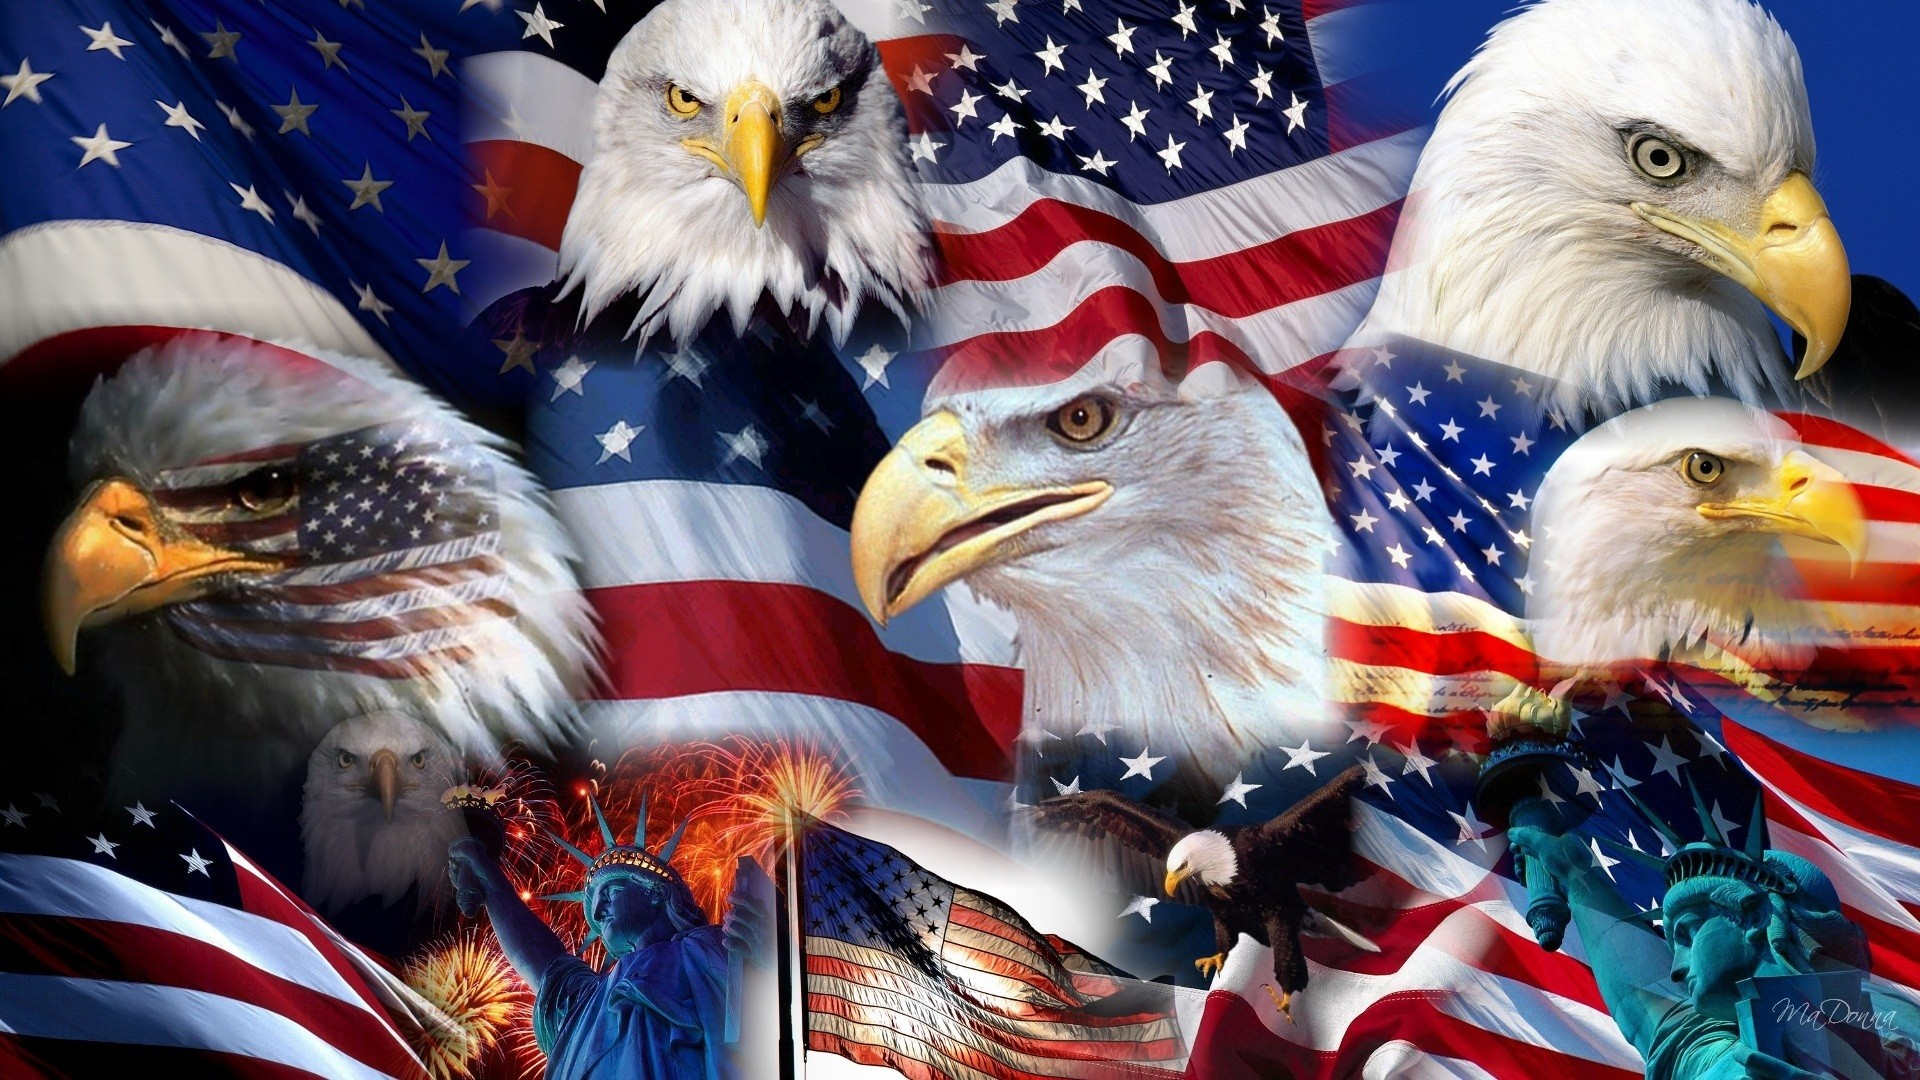 1920x1080 Patriotic Desktop Backgrounds wallpaper Patriotic Desktop